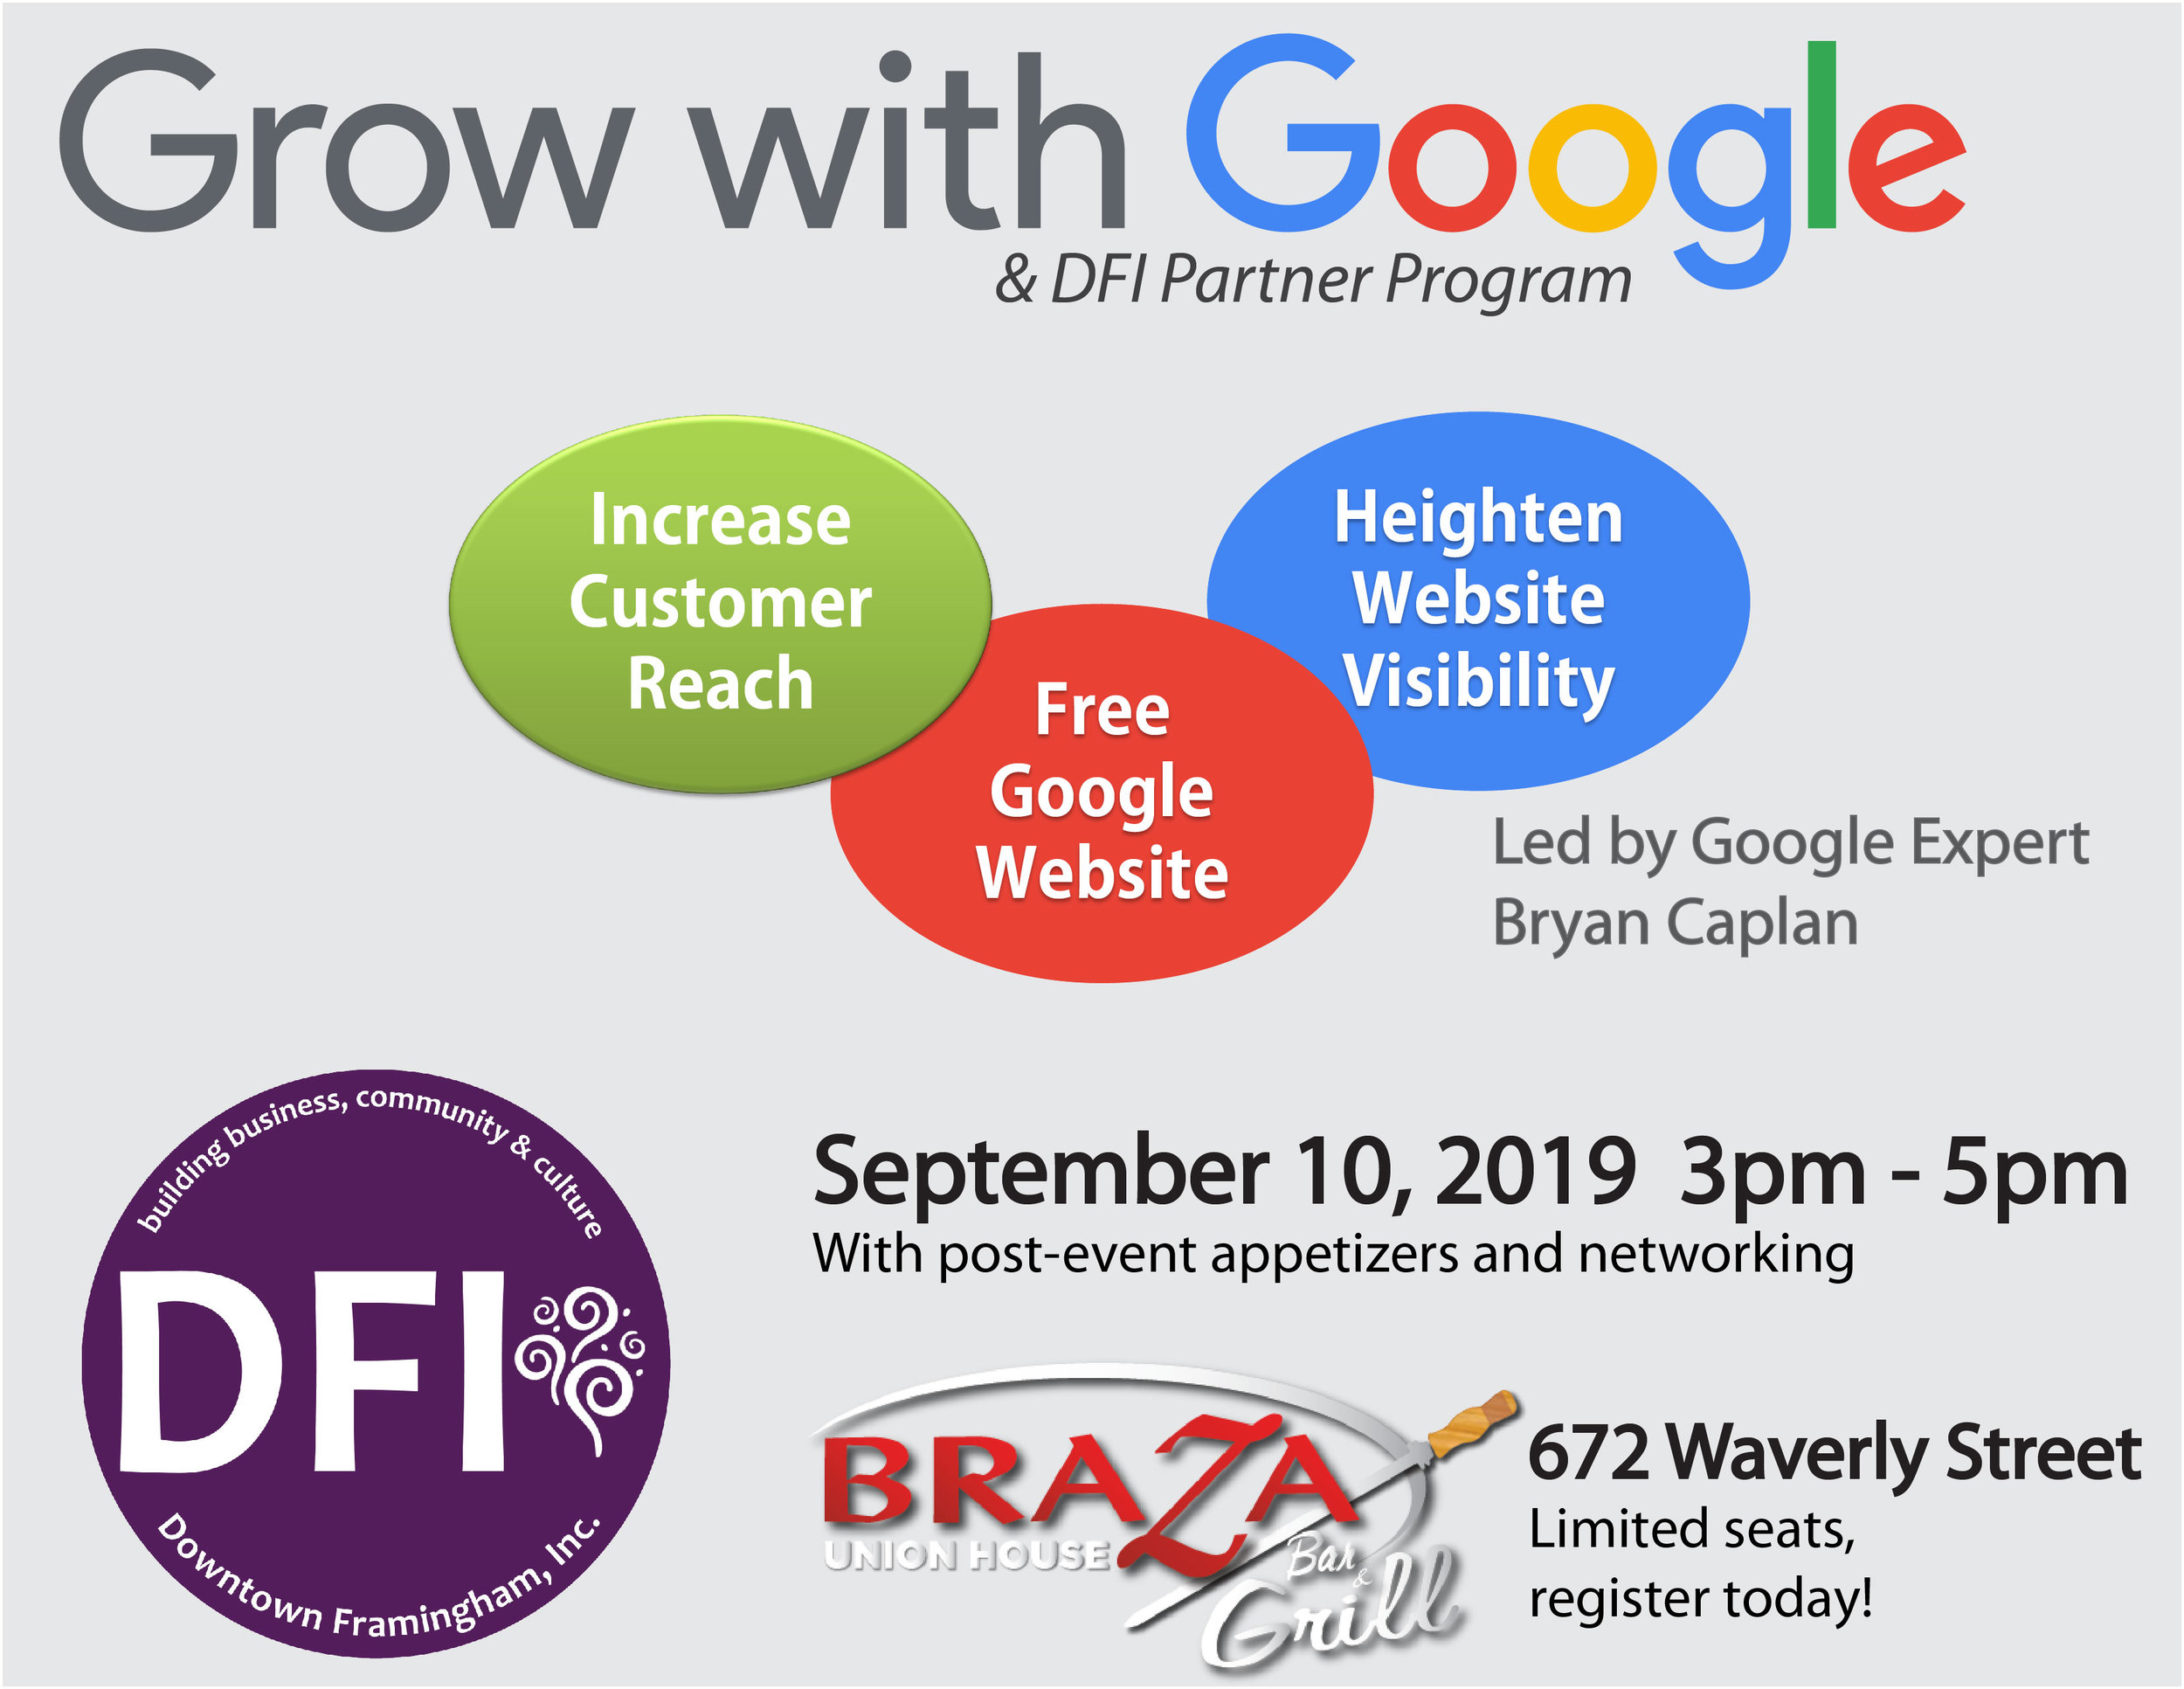 Come for the knowledge, leave with the connections.  We're pairing up Google Expert Bryan Kaplan with small business leaders across the area.  Seats are limited, so please register today . After the training, stay for appetizers and connect with savvy business leaders across the area. (Any business may register).   ~~~~~~~~~~~~~~~~~~~~~~~~~~~~~~~~~~~~~~~~~~~~~~~~~~~    Join Downtown Framingham and Bryan Caplan, speaker for the Grow with Google partner program, for an info-packed workshop dedicated to growing your business online.    1) Reach Customers Online with Google  Learn how customers find your business online and how to promote your online presence using a free business listing, search engine optimization (SEO) techniques, and online advertising. We'll introduce some tools that can help, including Google Analytics and Google Trends.  In this workshop we'll discuss best practices for: -Creating a free Google My Business listing - Improving your website's visibility in Google's organic search results, on all devices -Advertising your business on Google    2) Get Your Business Online  Learn about Google My Business, a free tool for local businesses who want to connect with customers on Google Search and Maps. Get hands-on help creating or updating your business profile or a simple website. - Create or claim your Google My Business listing - Manage your business info across Google Search and Maps - Use Google My Business to connect with potential customers - Create a free website using the info from your business listing  Seating is limited. Register early! Suggested at-door donation is $10.00. DFI Business Members are free.